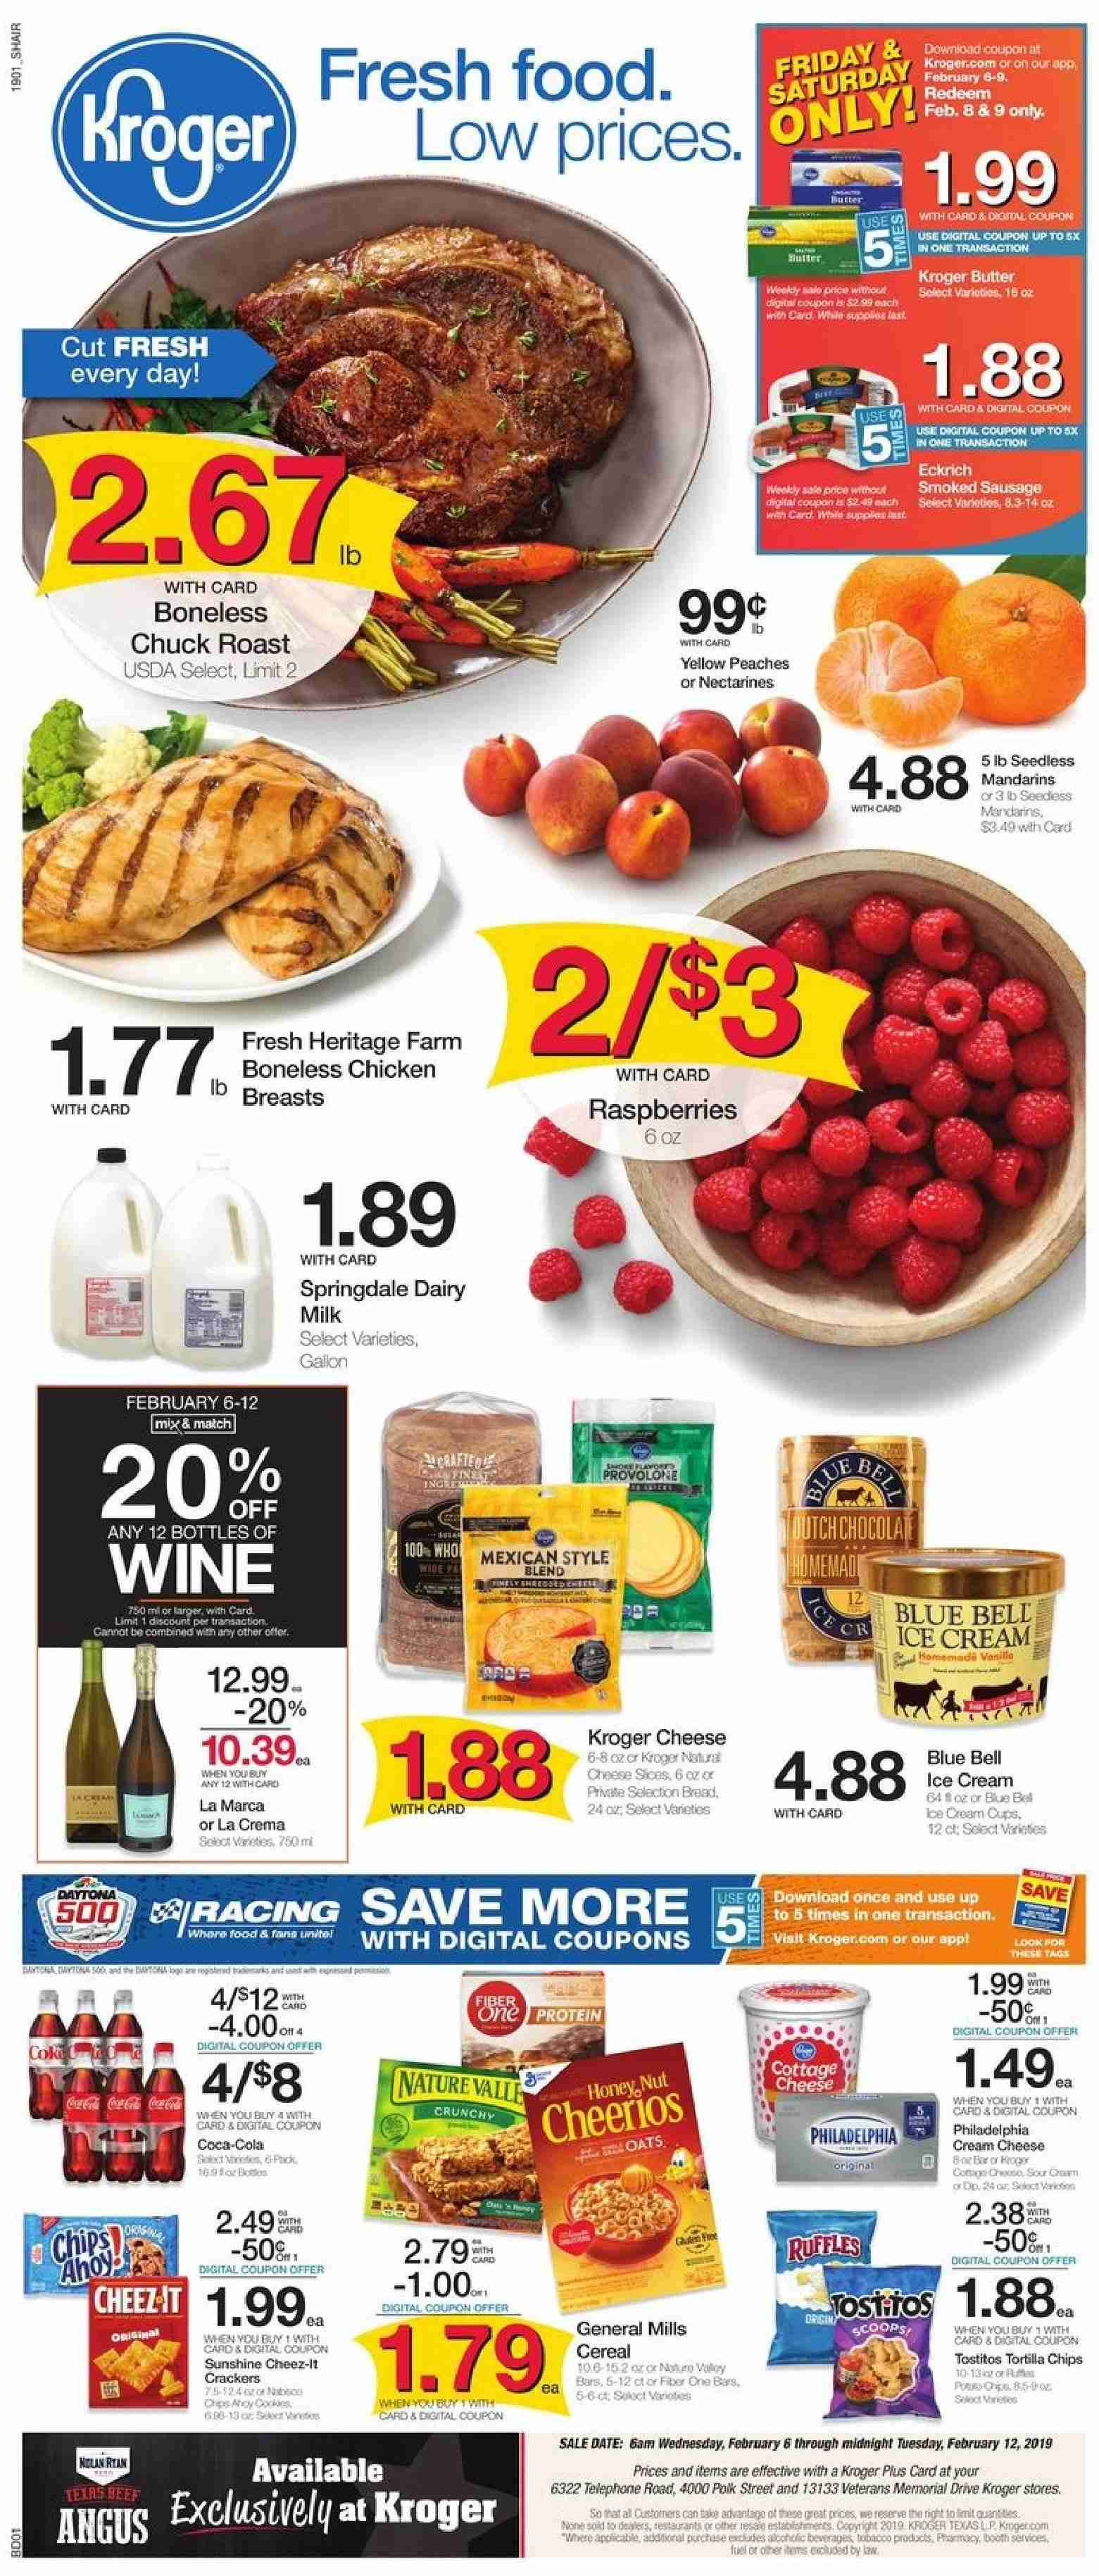 Kroger Flyer - 02.06.2019 - 02.12.2019 - Sales products - bread, cereals, cream cheese, raspberries, sausage, smoked sausage, tortilla chips, hat, ice cream, polk, provolone, chicken, peaches, oats, chips, cheese, cereal, wine. Page 1.